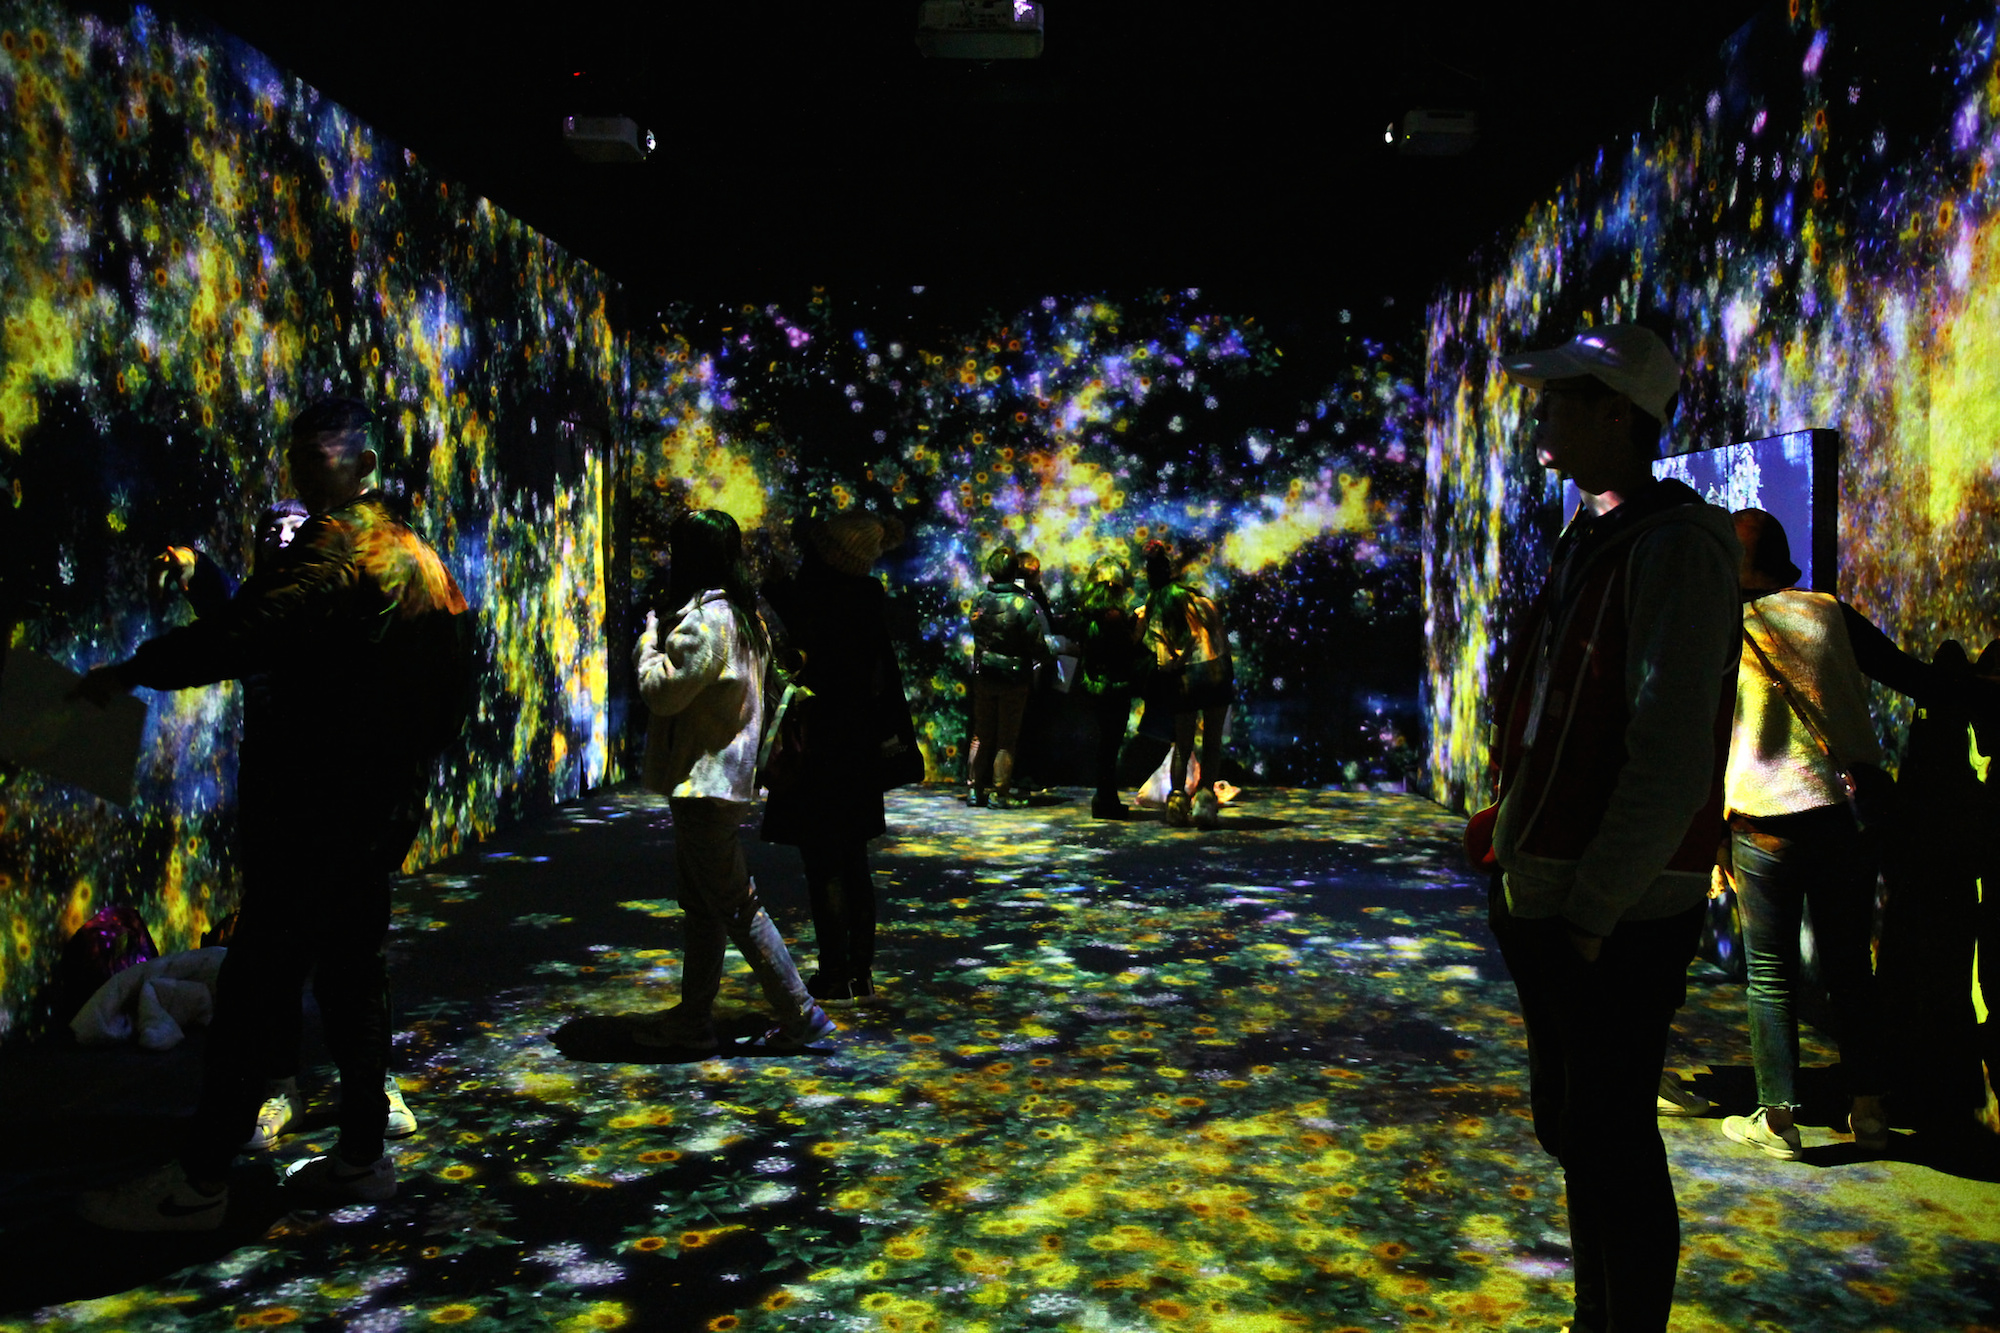 A guide to art events in May in Paris, like Teamlab's installation at La Villette cultural hub.